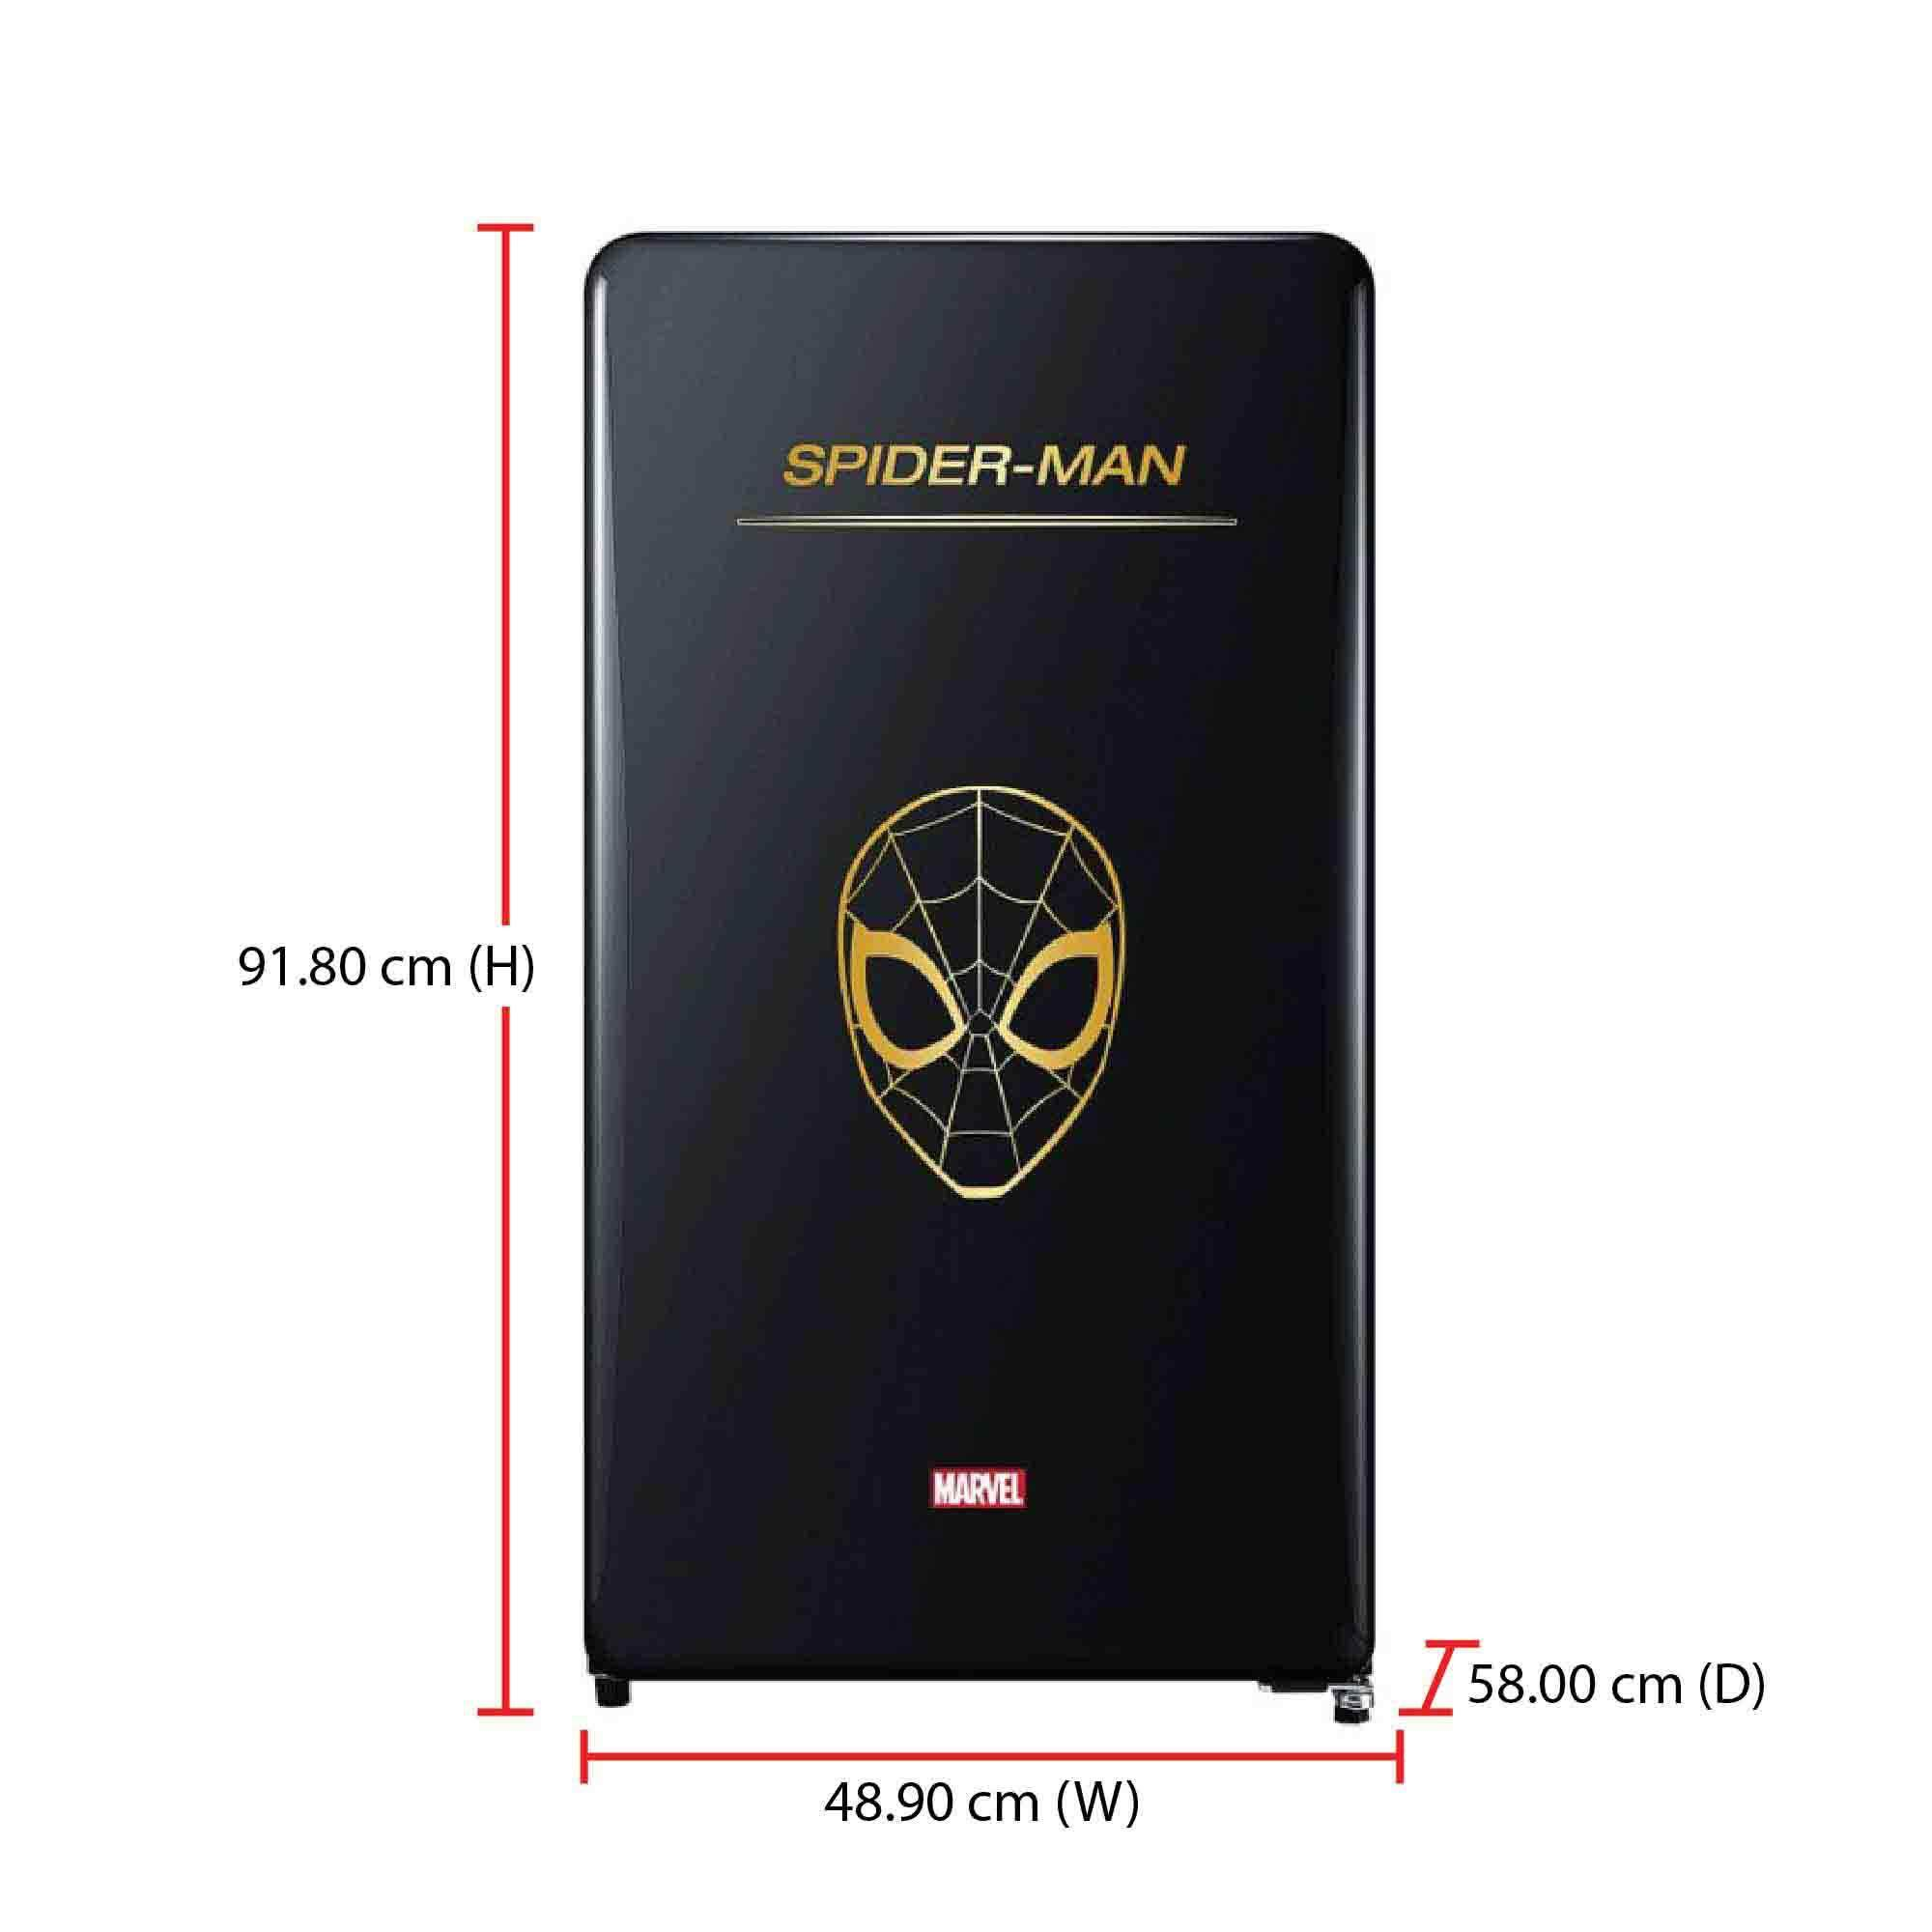 Daewoo Spiderman Fridge FN-M125SM (125L) Limited Edition Marvel Series